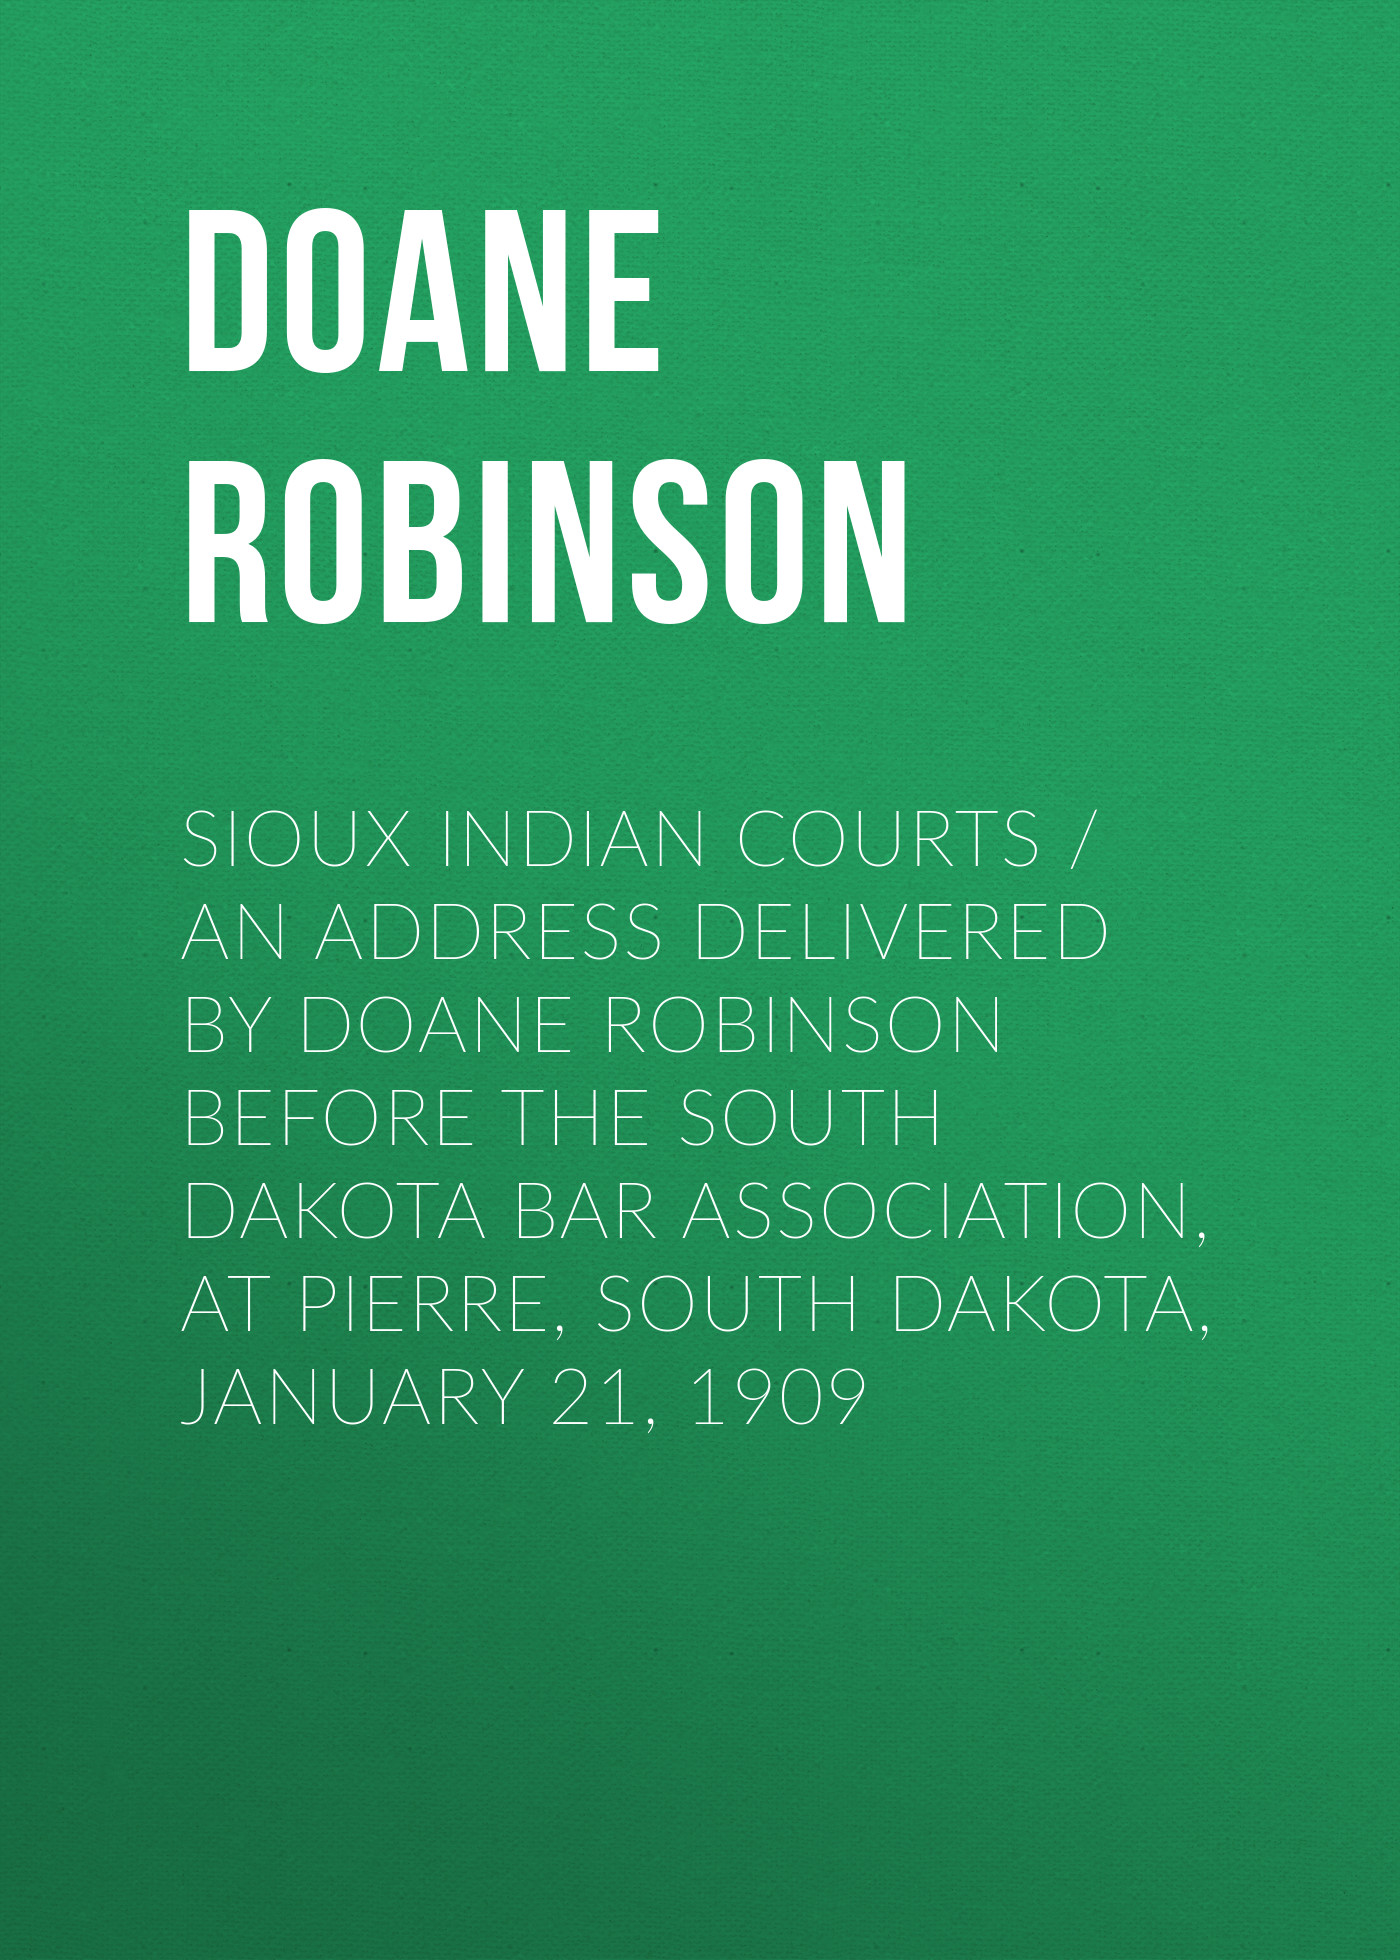 купить Doane Robinson Sioux Indian Courts / An address delivered by Doane Robinson before the South Dakota Bar Association, at Pierre, South Dakota, January 21, 1909 дешево